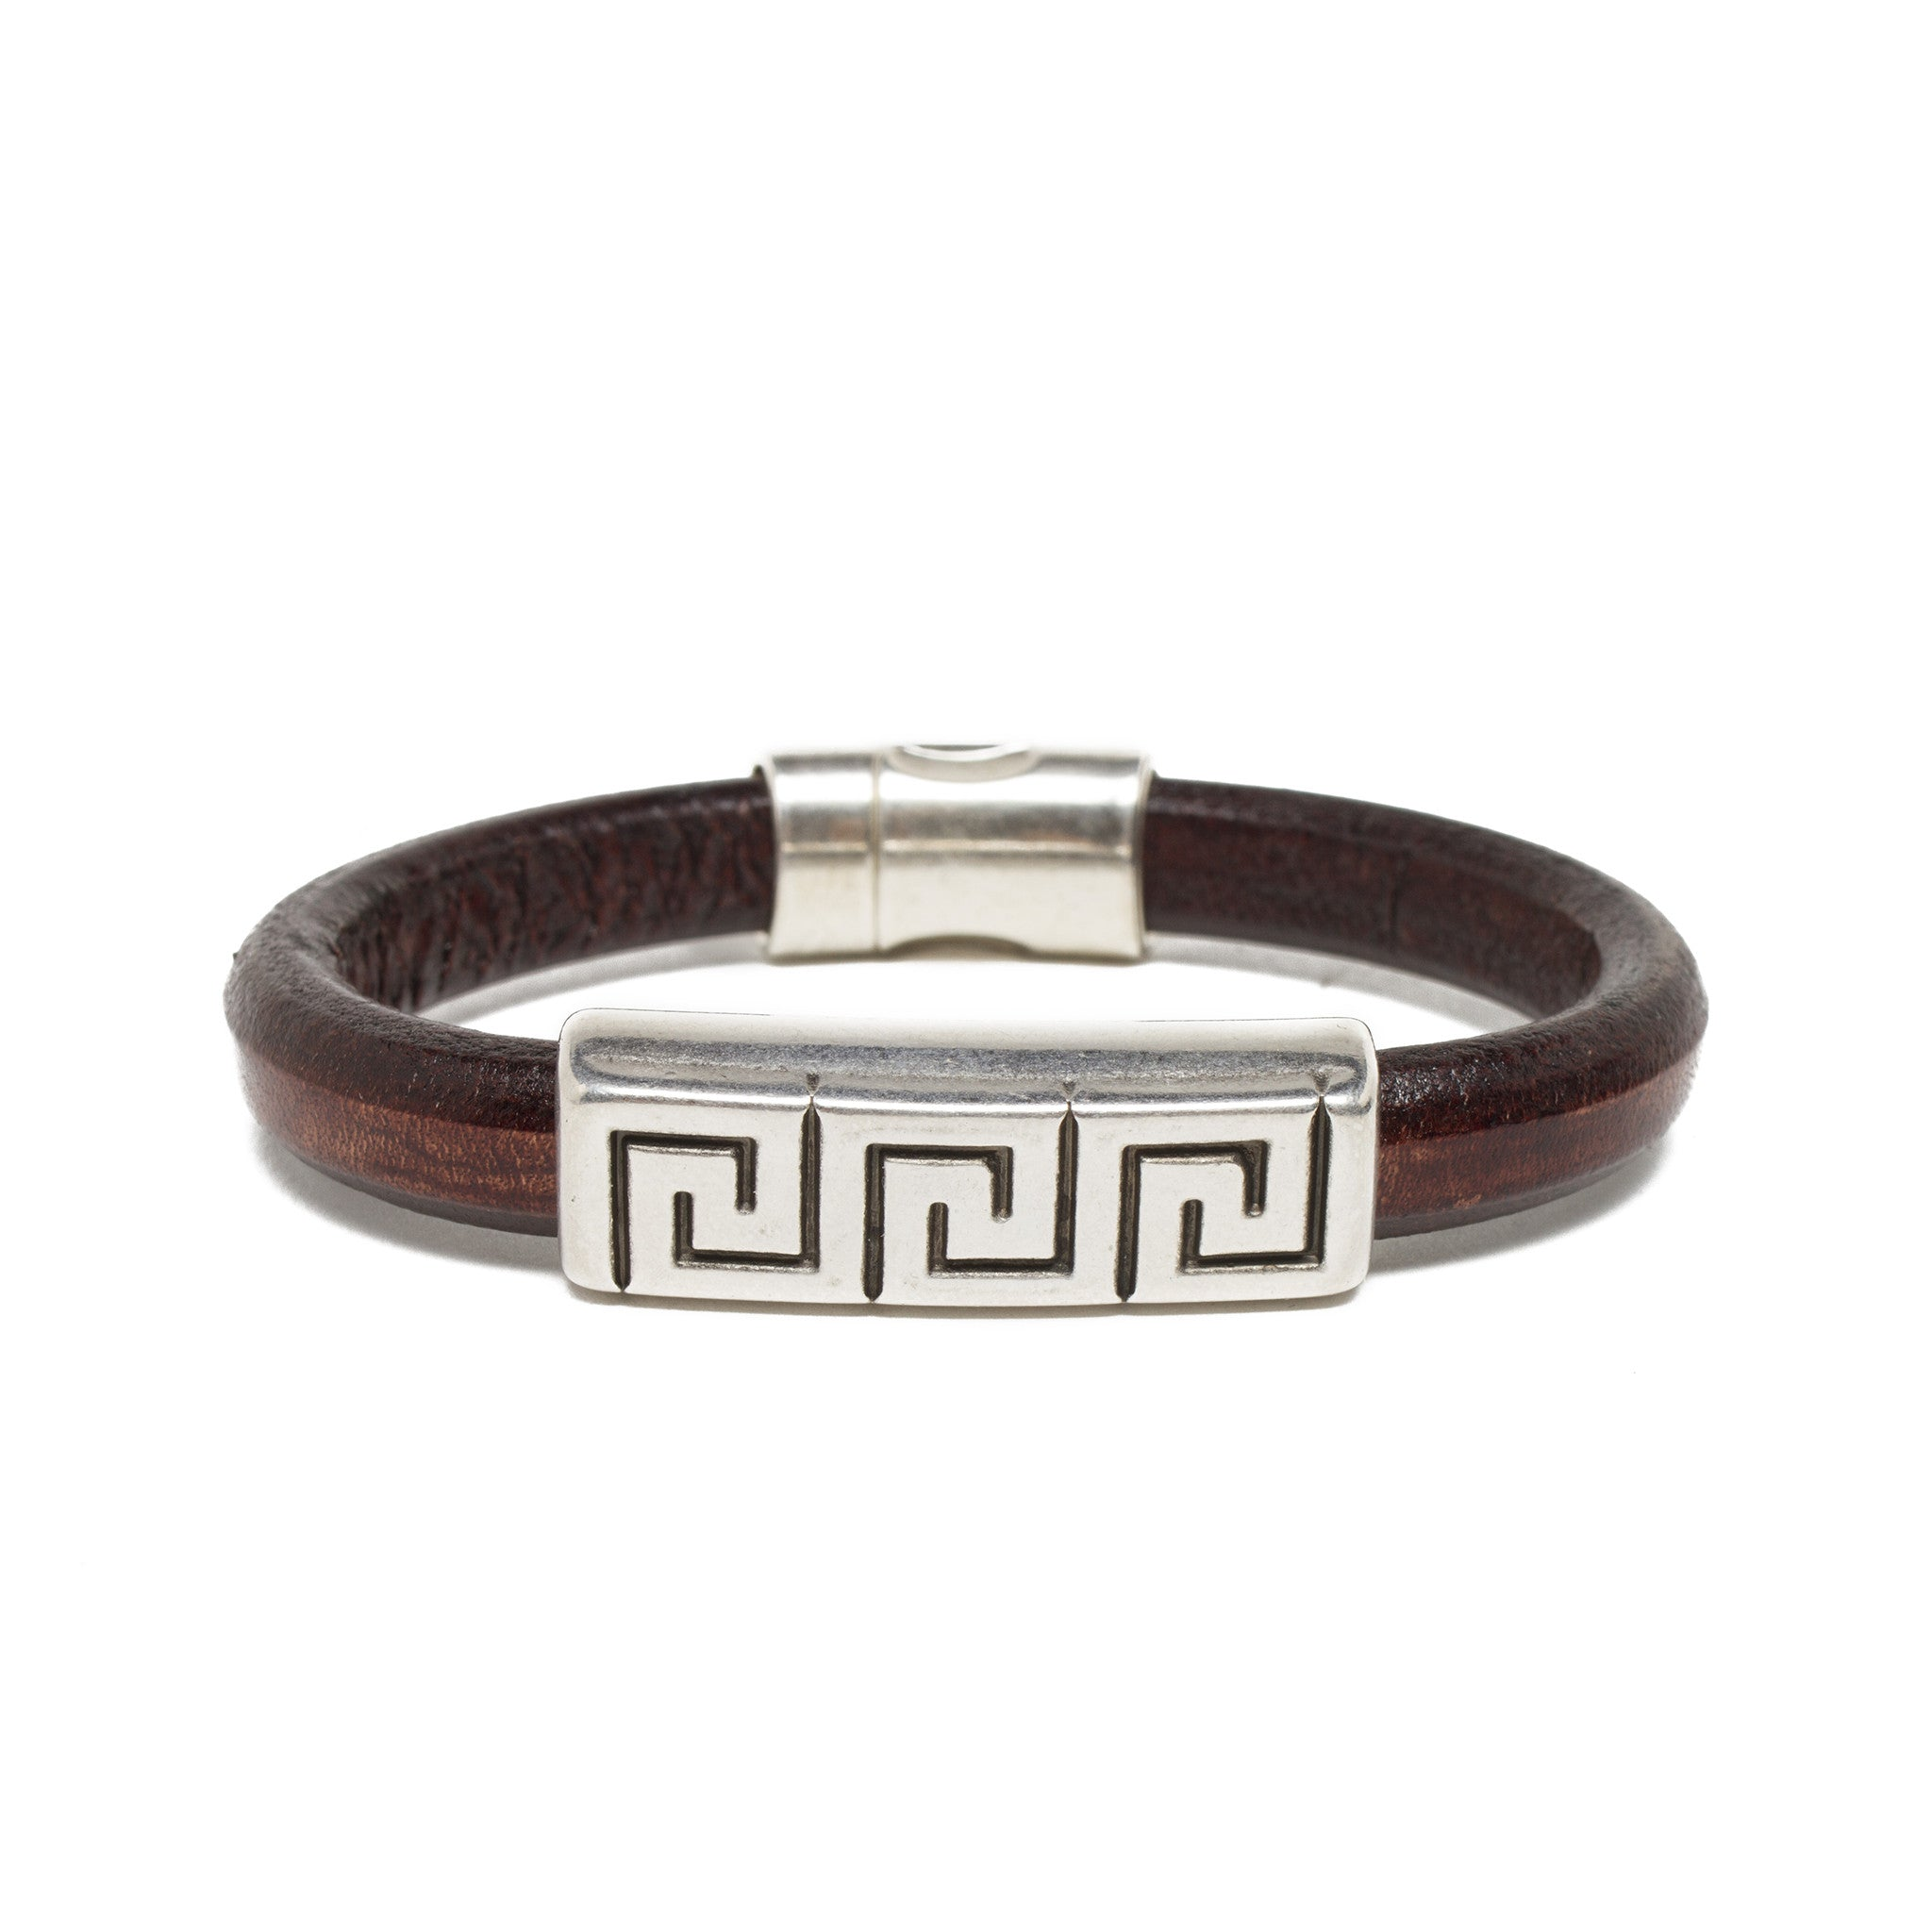 leather bracelets with plaited steel bangles clasp silver bangle stainless hiho bracelet